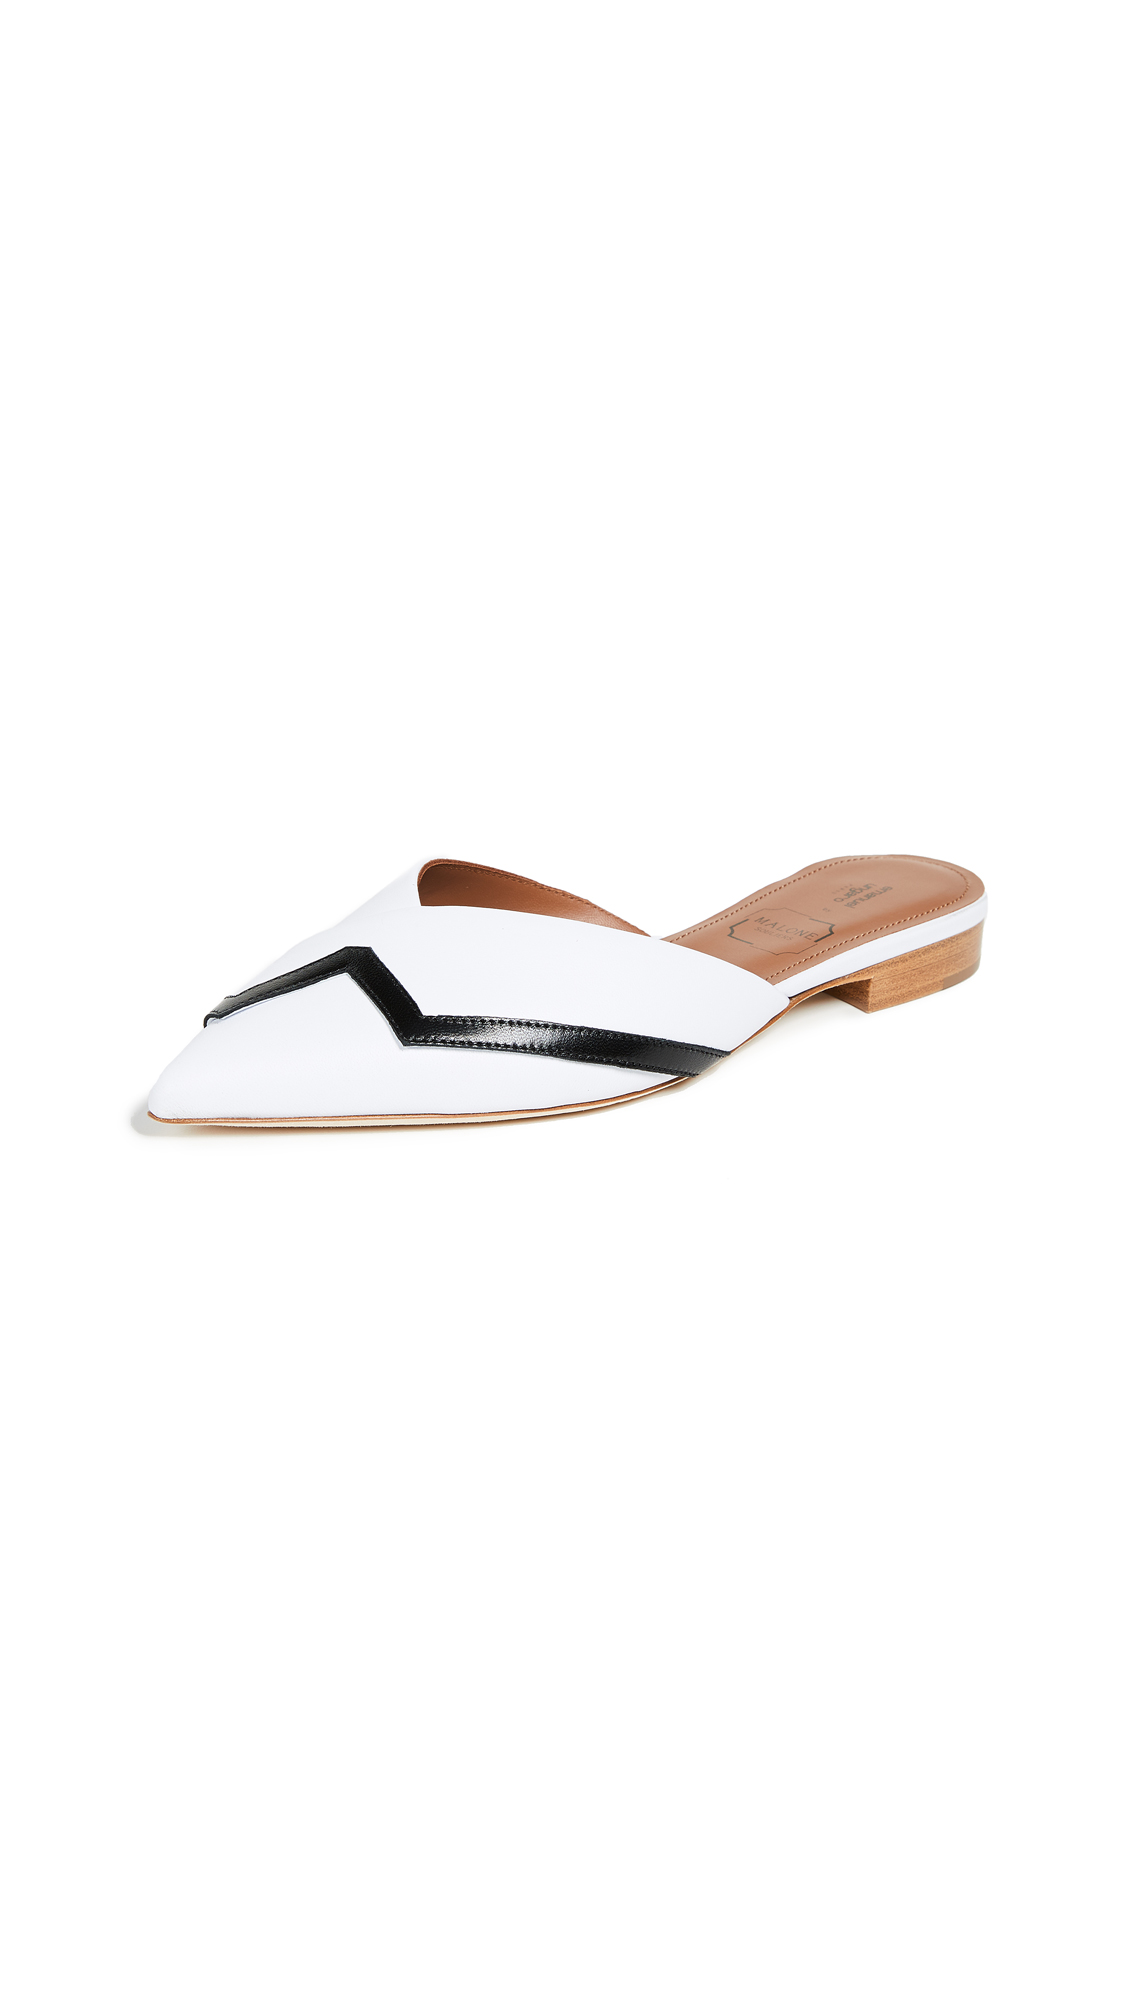 Malone Souliers Amelie Flat Mules - Black/White